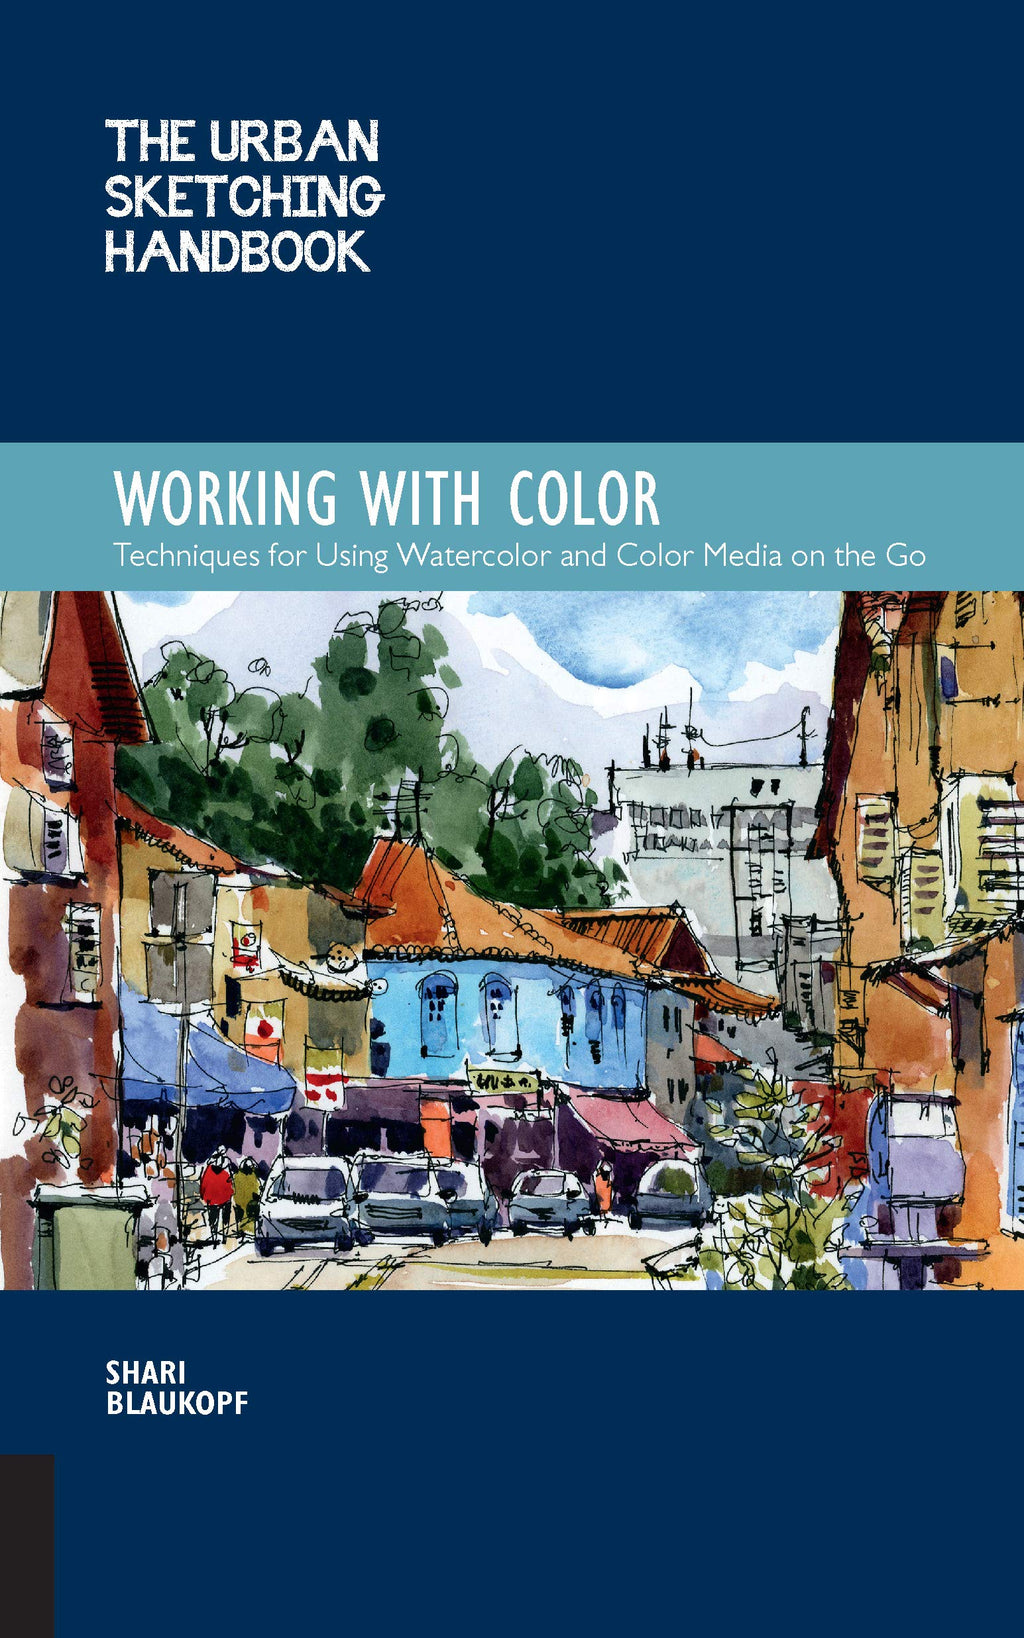 Working With Color - The Urban Sketchbook